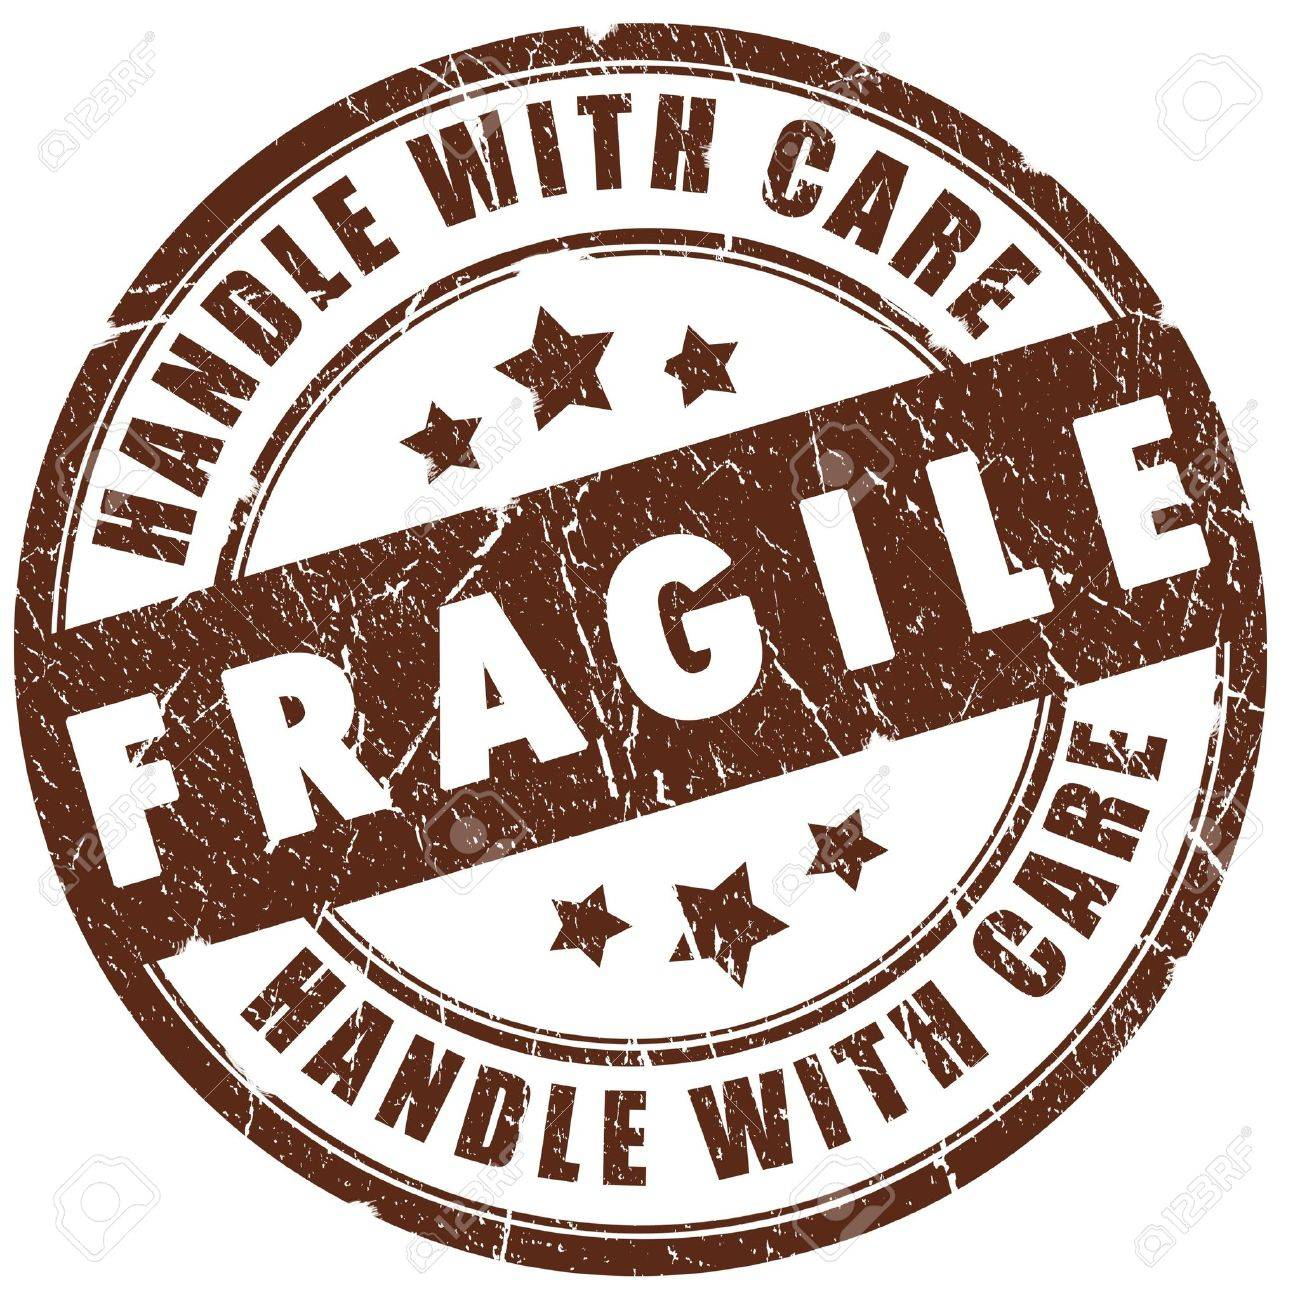 Fragile stamp Stock Photo - 6355754